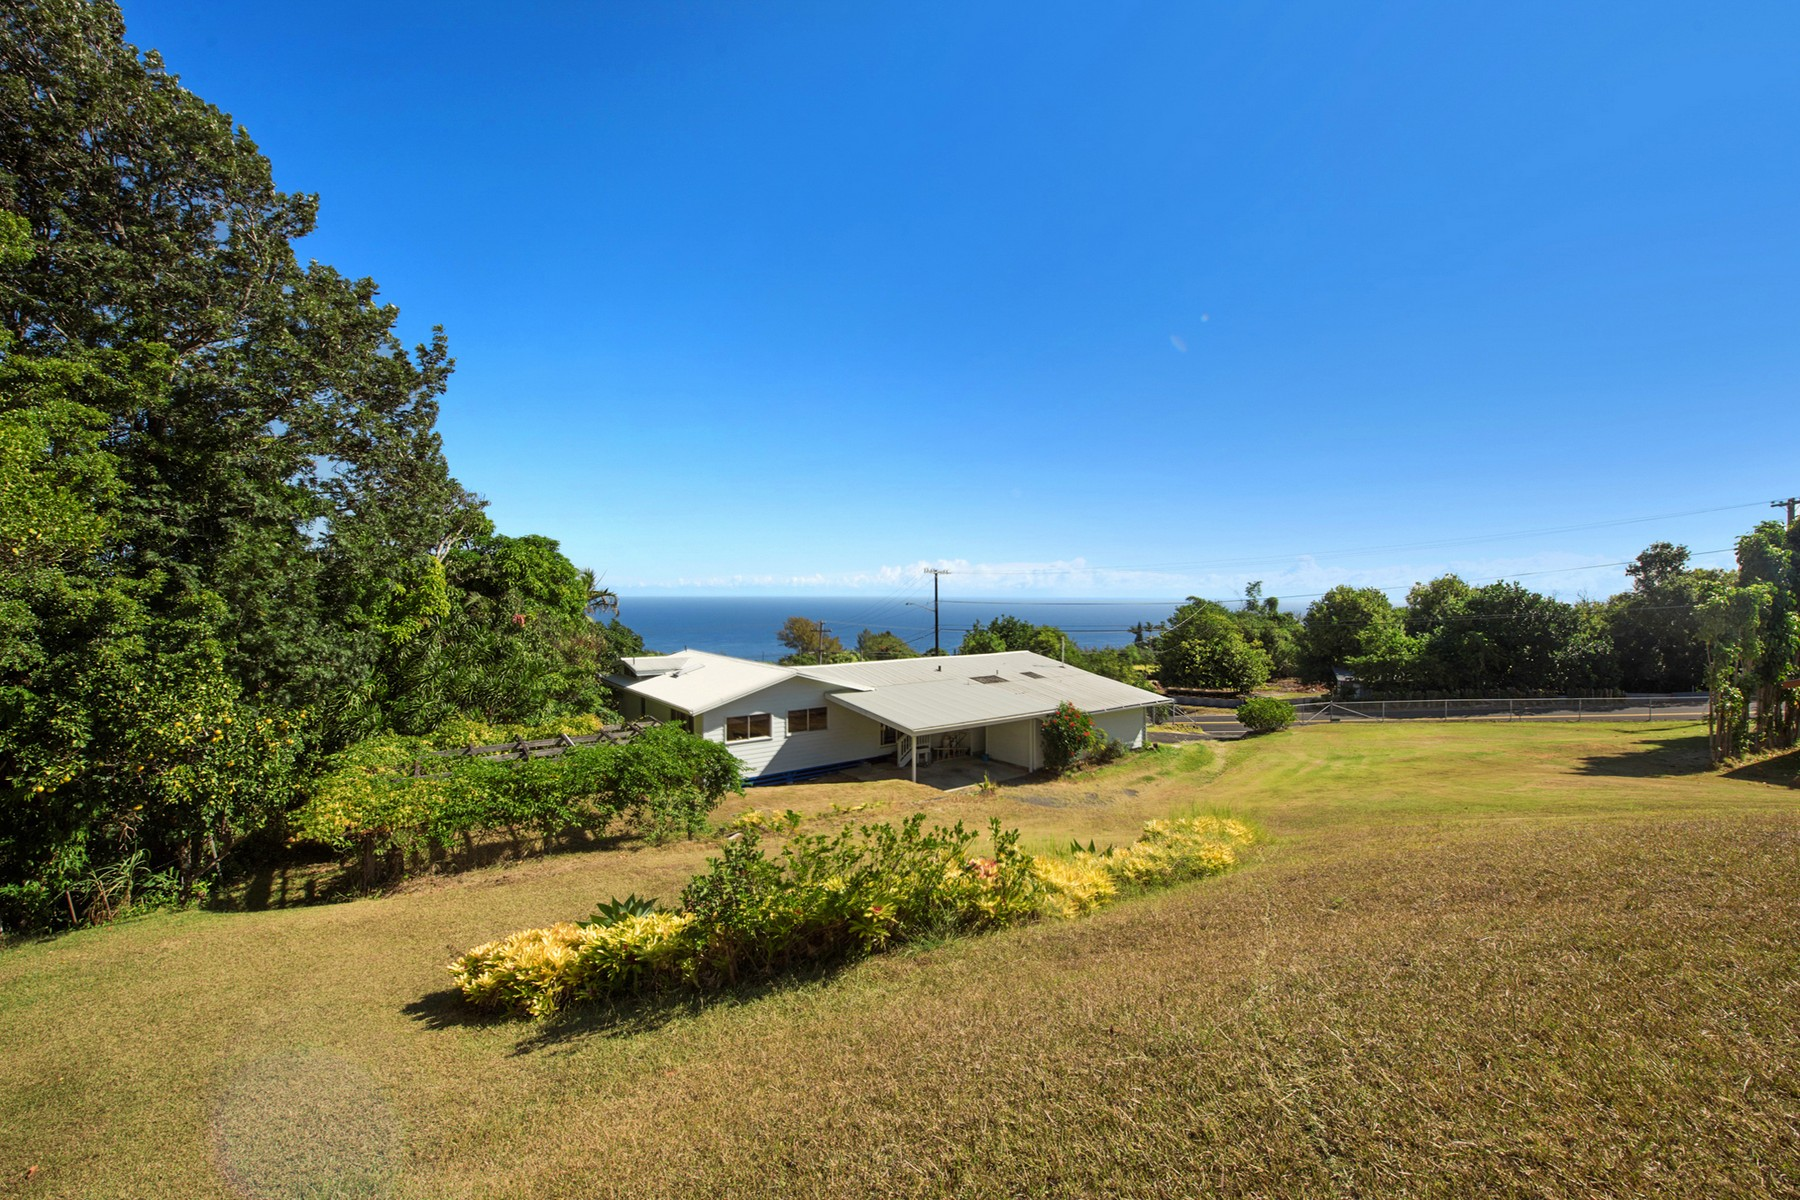 Single Family Home for Sale at Decambra Condominium Project 44-2224 Kalaniai Rd Honokaa, Hawaii 96727 United States